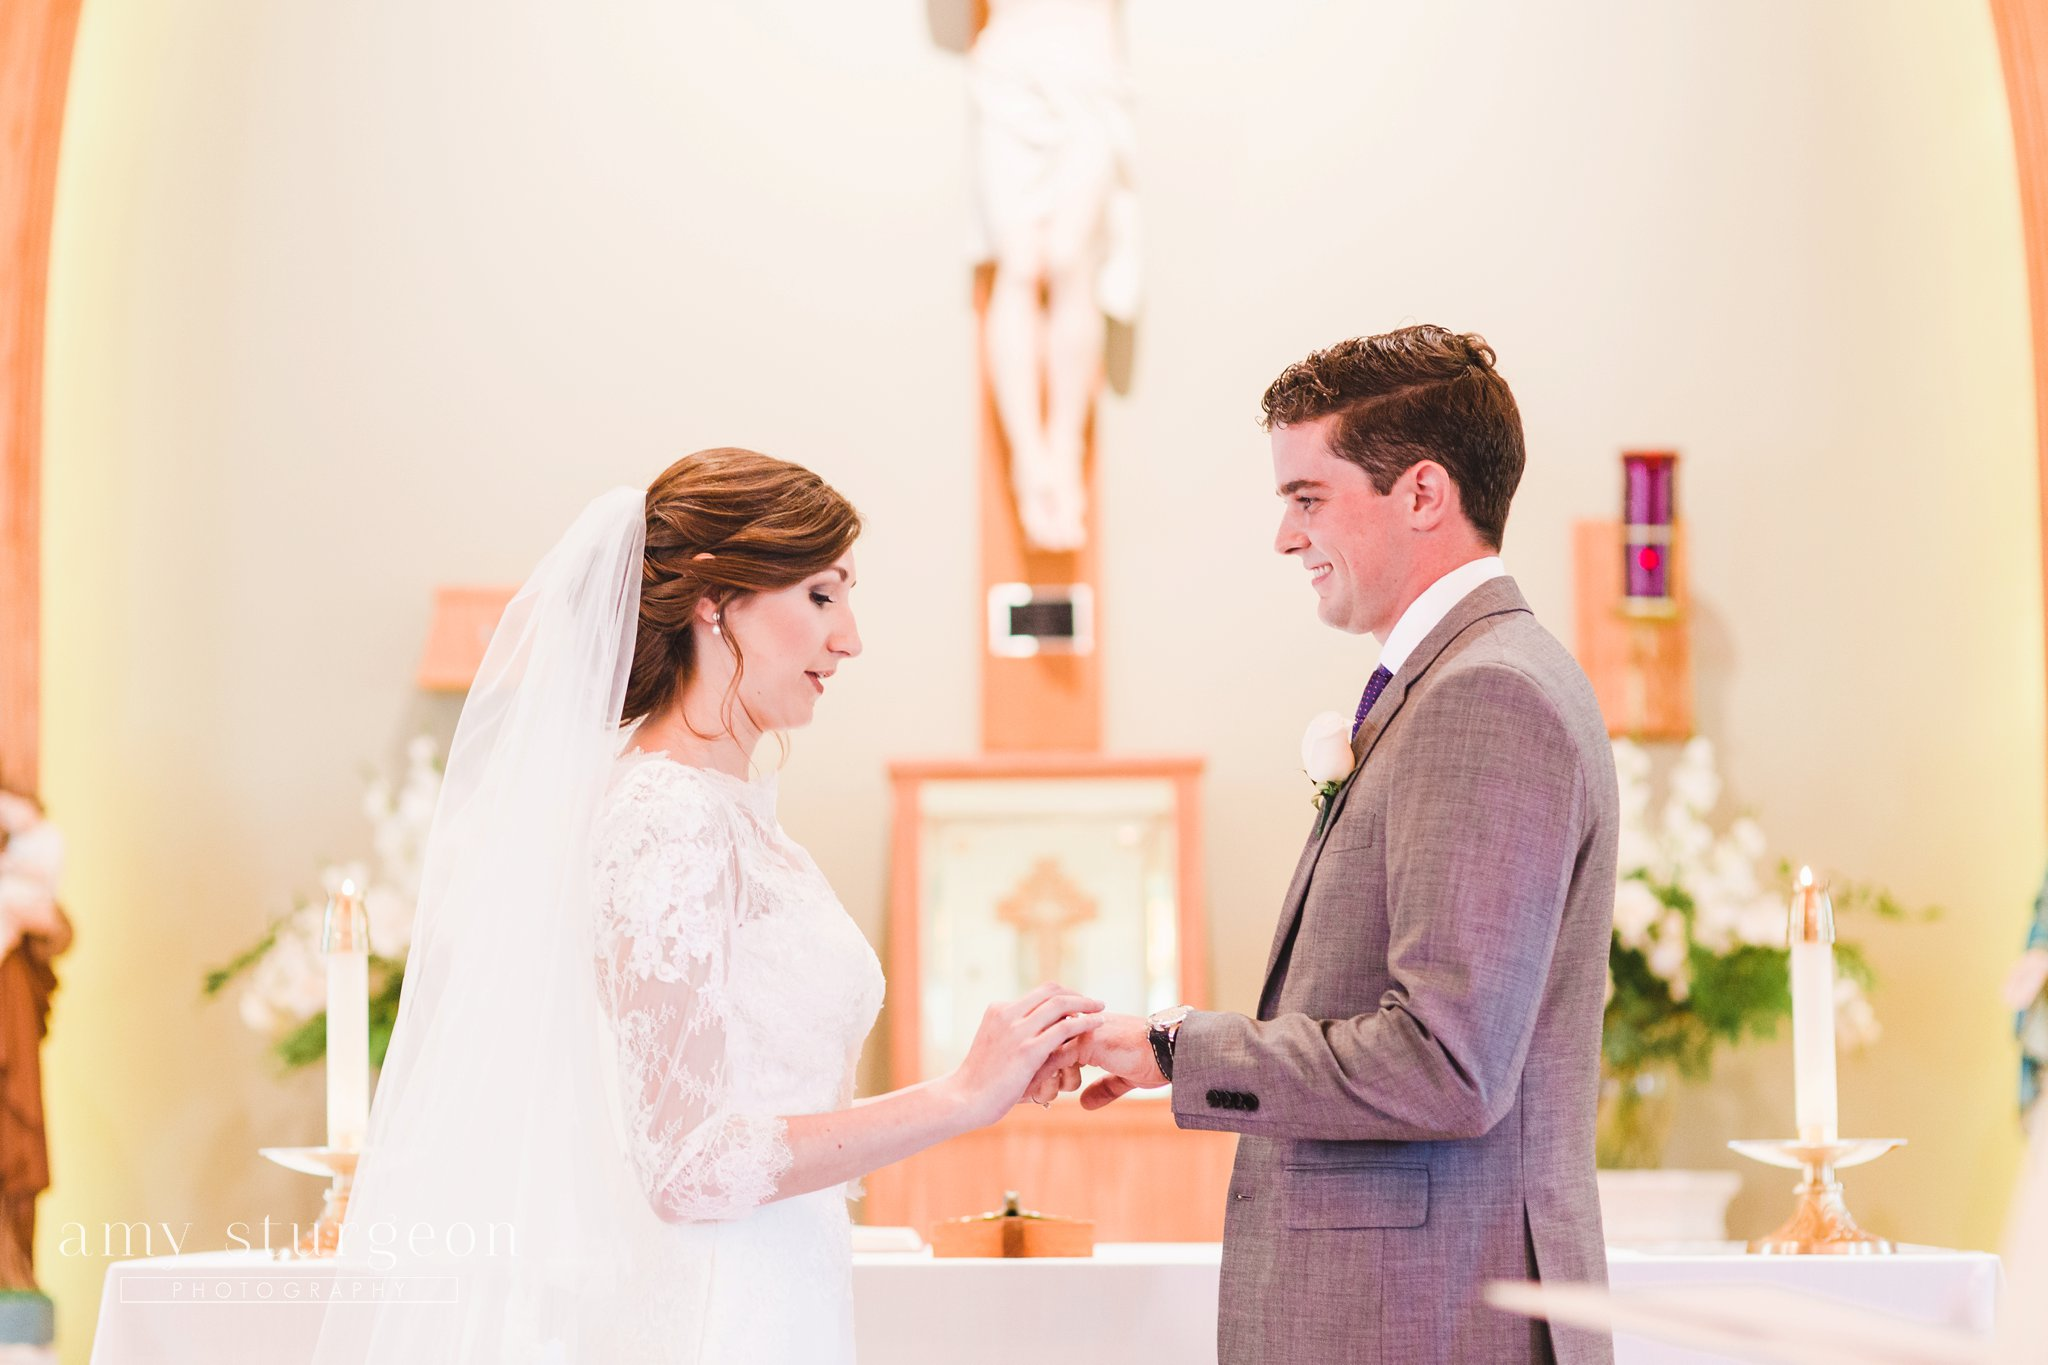 Exchanging of rings at the alpaca farm wedding